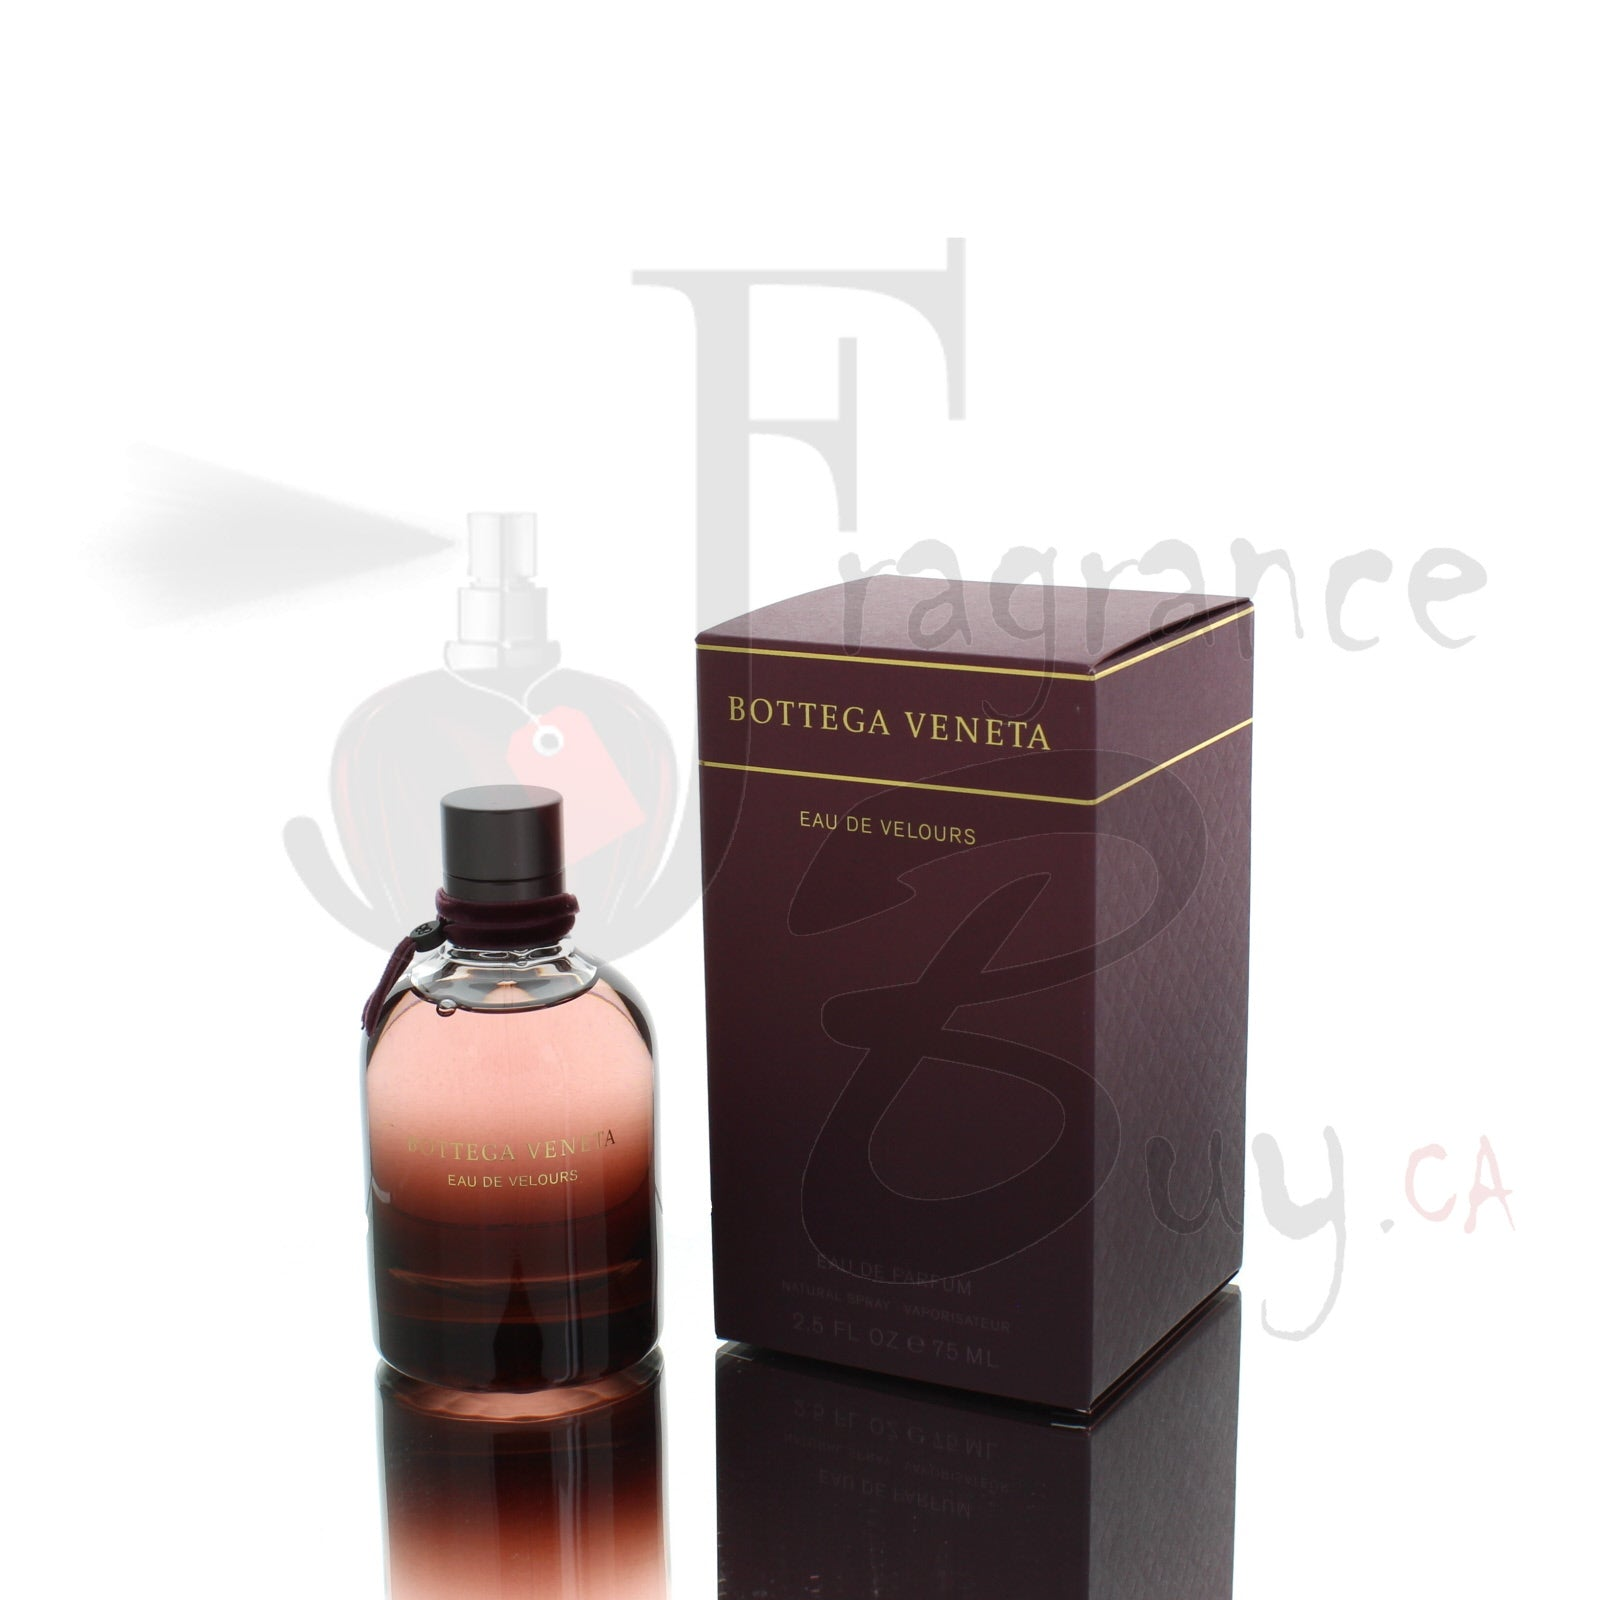 Bottega Veneta Eau de Velours For Woman